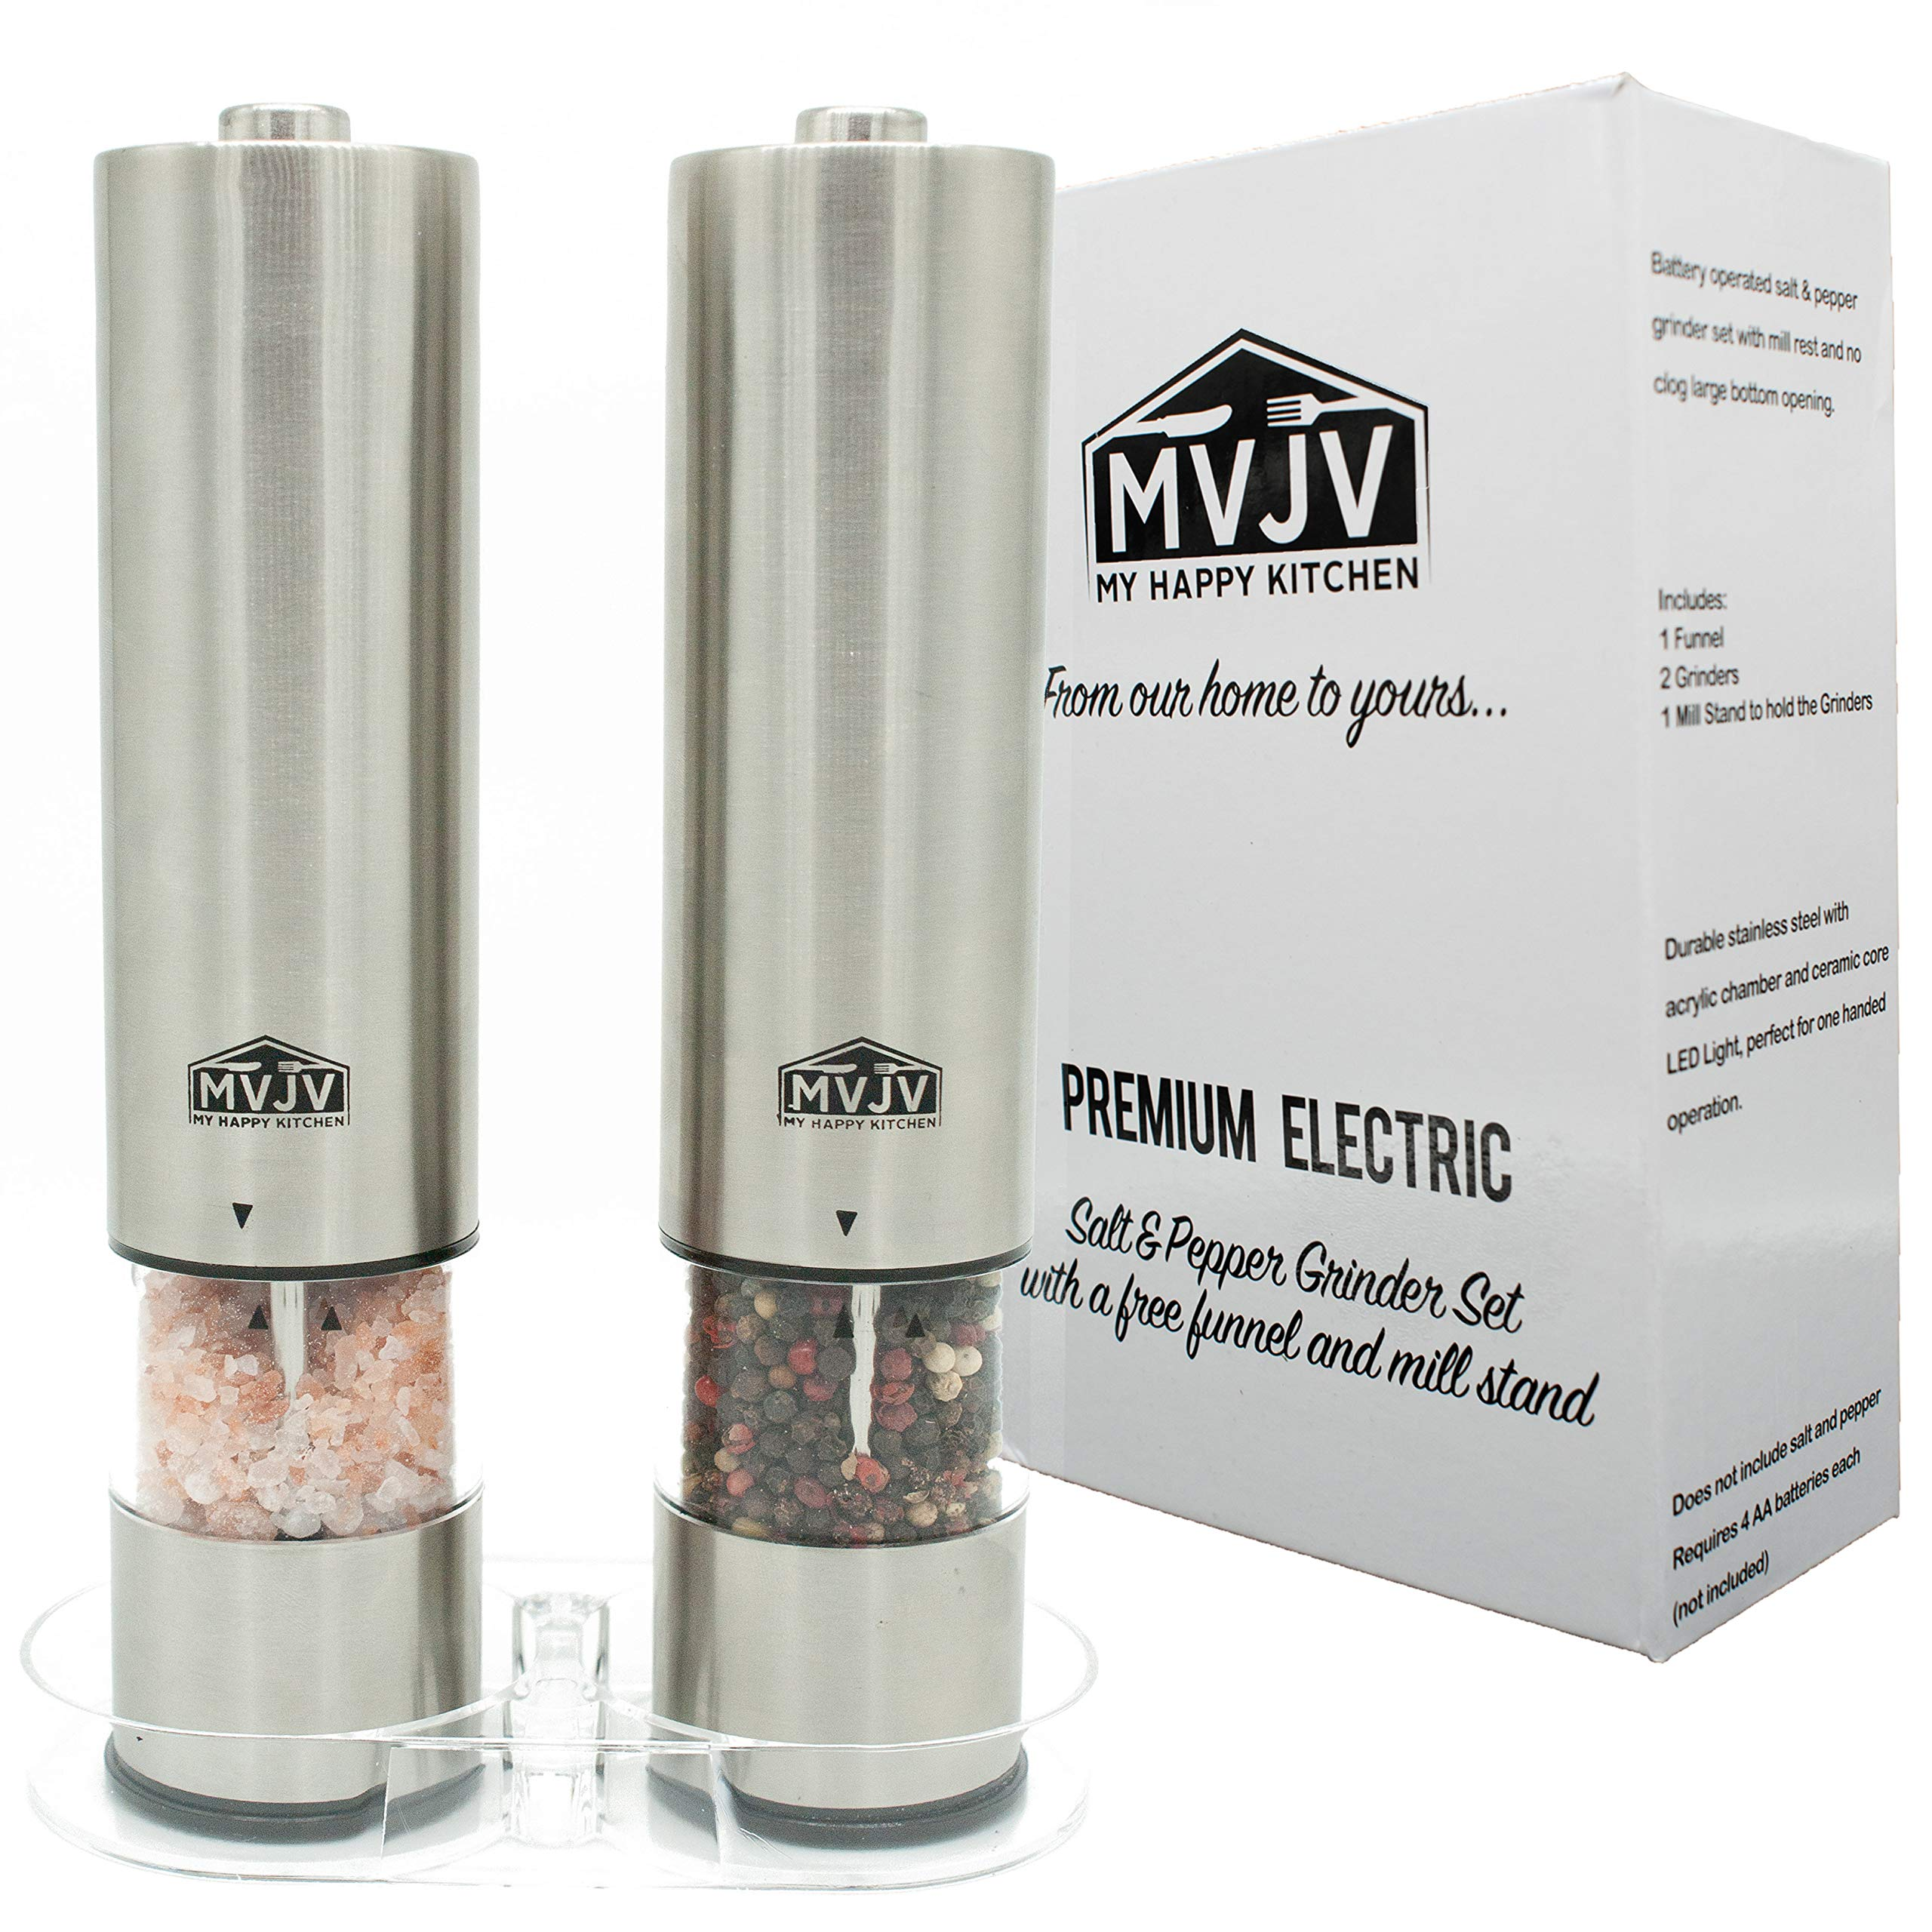 Electric Battery Operated Salt and Pepper Grinder Mill Set - Automatic Stainless Steel Tray Stand Funnel for Home Kitchen | 2 Pack Mill Shakers | Sea Salt n Pepper | LED Light | Adjustable Coarseness by My Happy Kitchen by MVJV